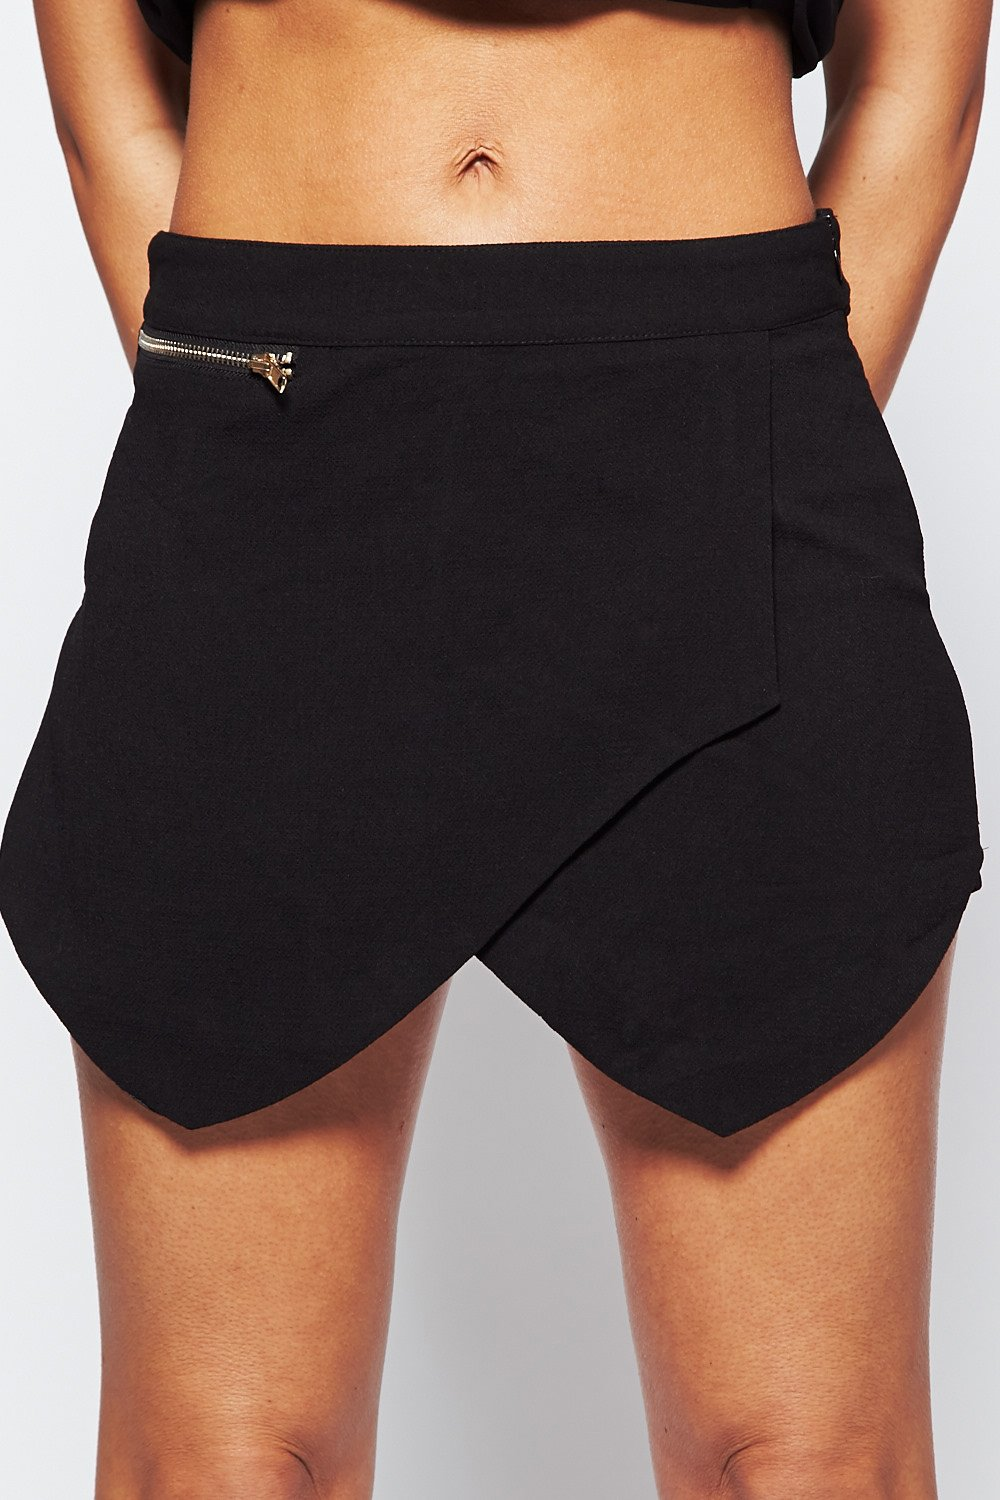 Black skorts skirt shorts with zip